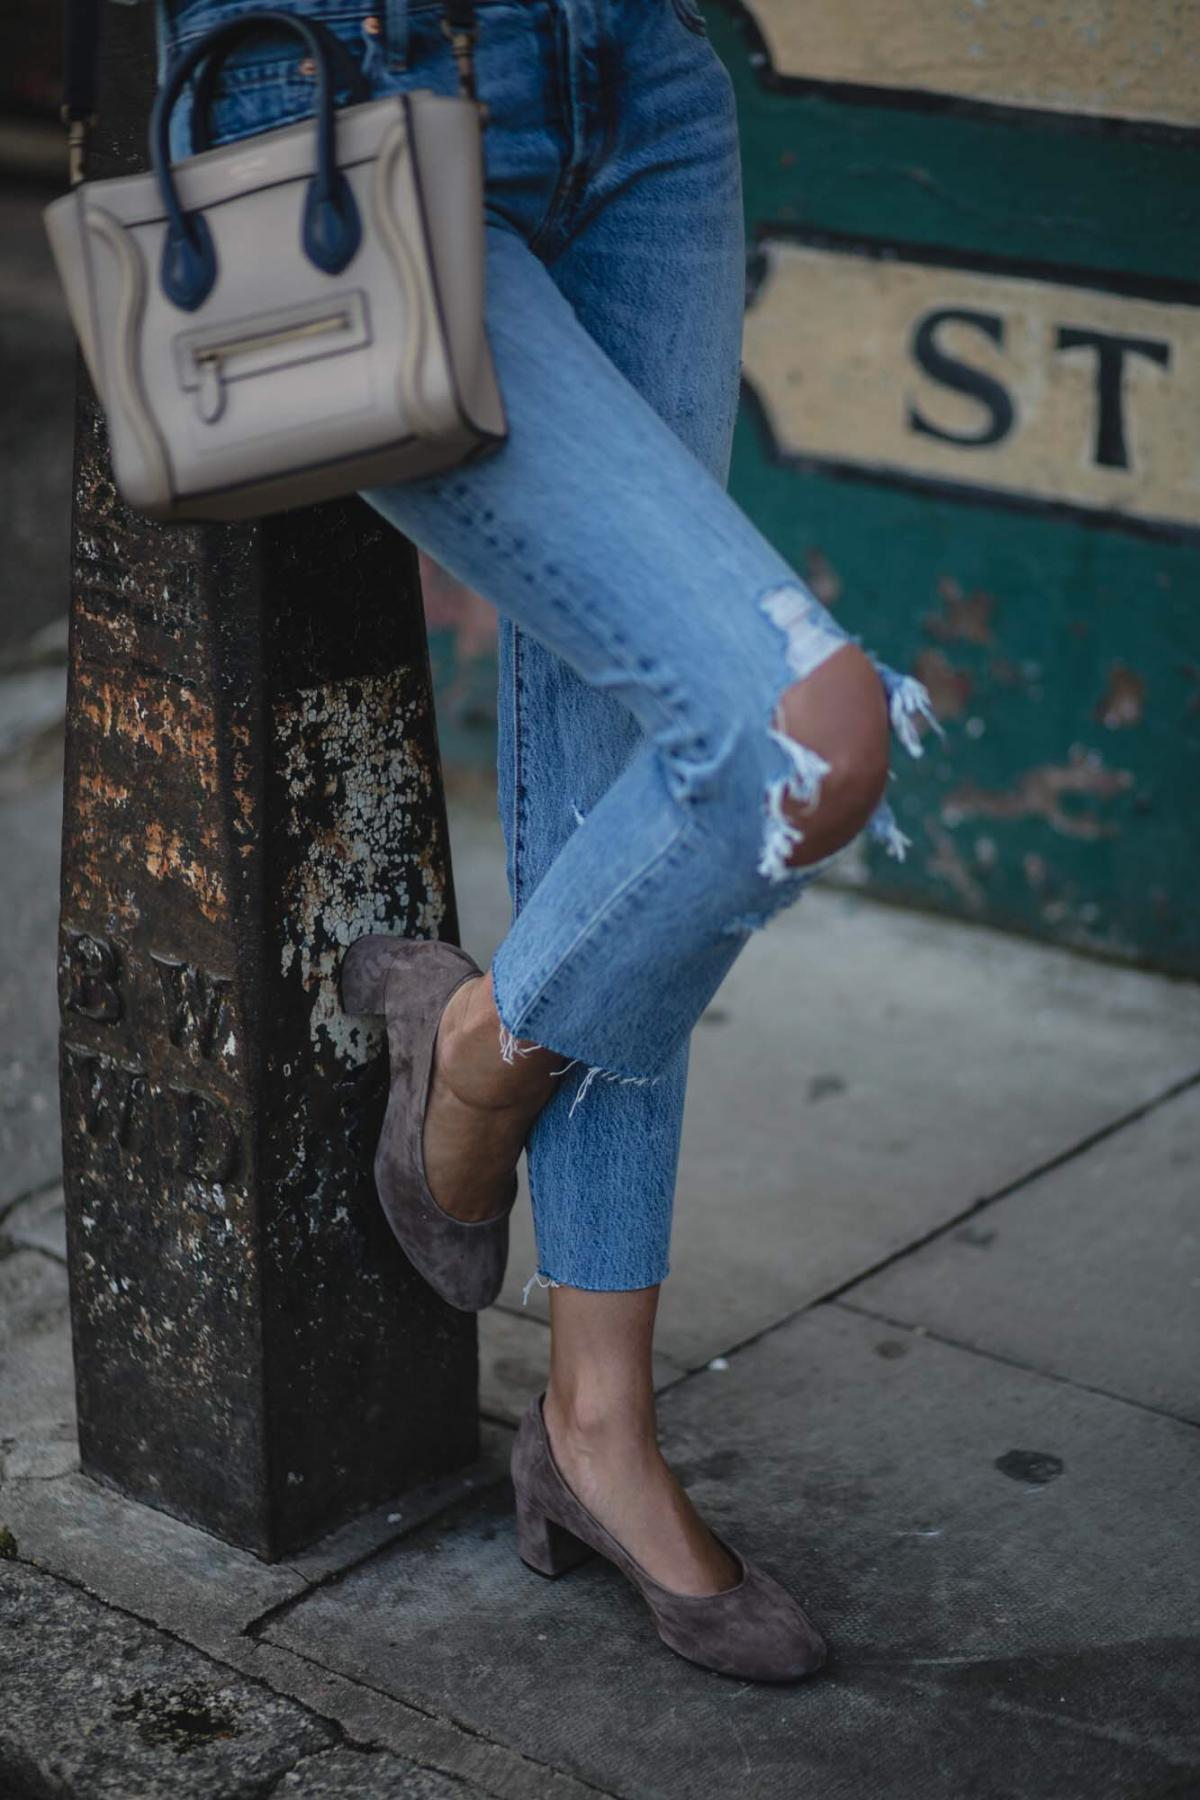 ripped Levis 501 CT jeans with busted knees, Celine nano bag, suede glove shoes with block mid heel, chic summer outfit